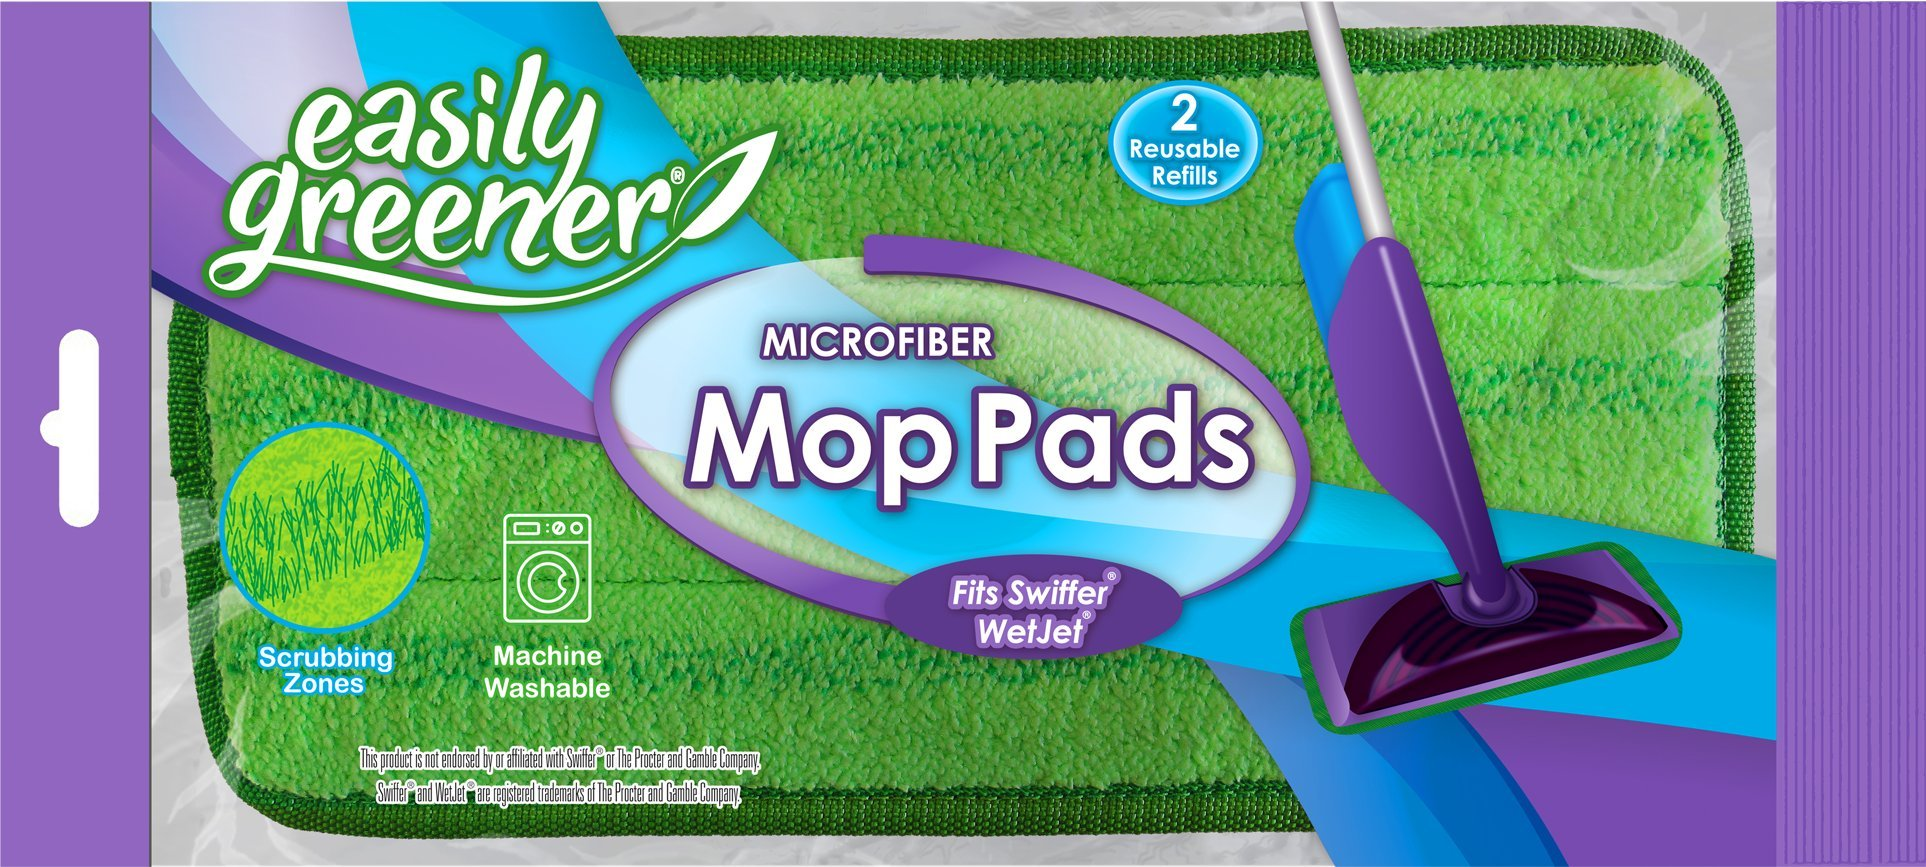 Compatible Microfiber Mop Pads Easily Greener Reusable